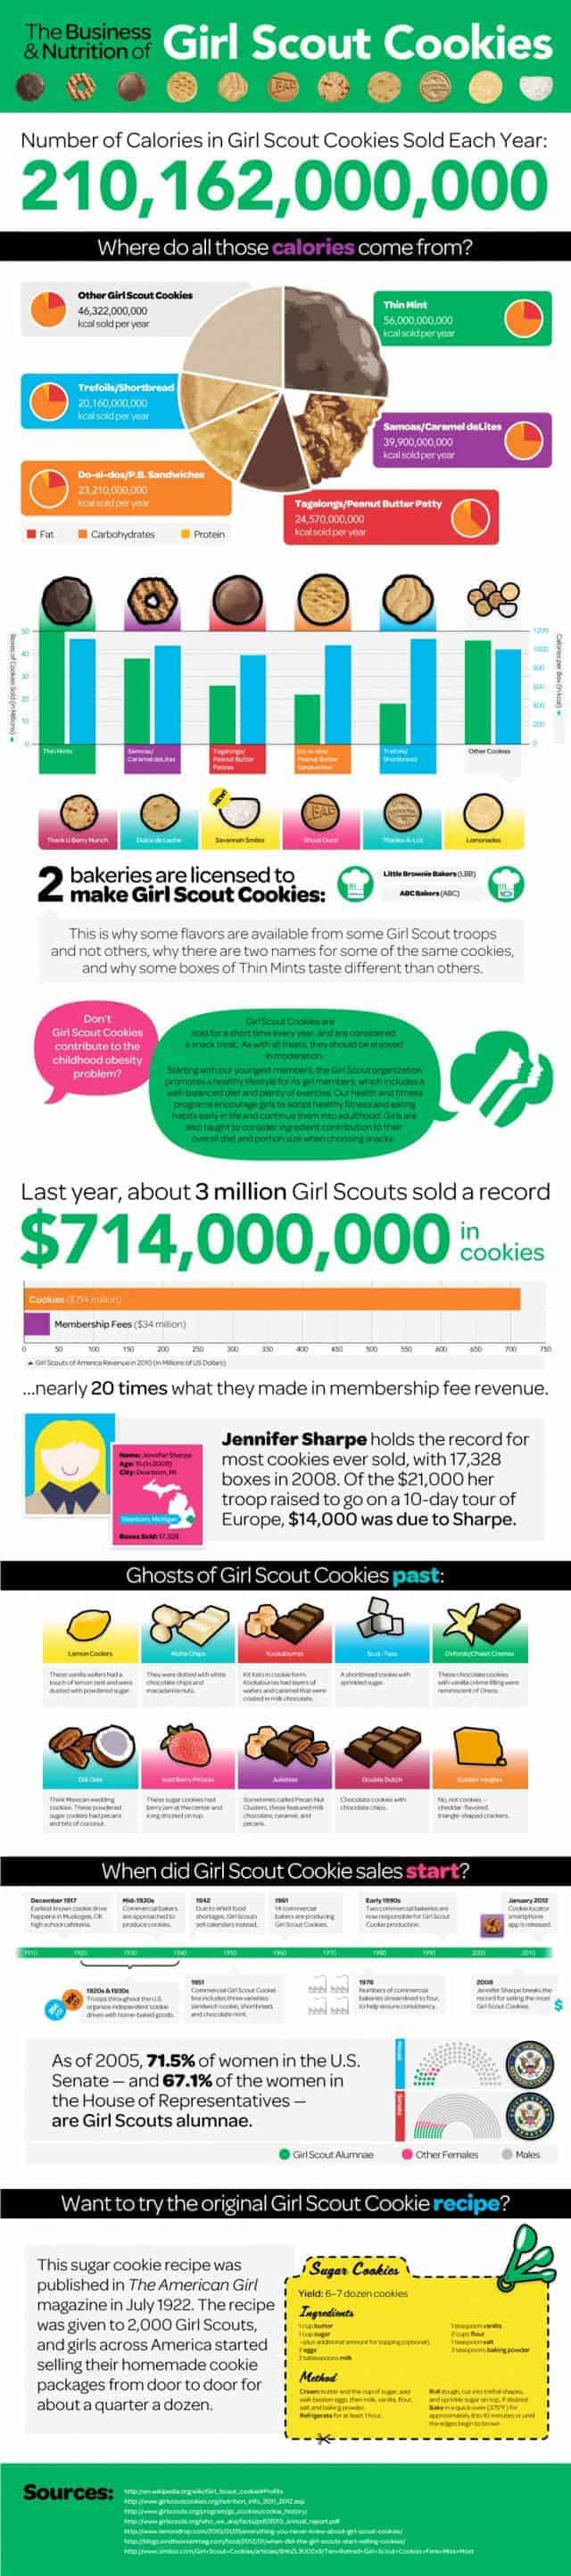 The Business & Nutrition of Girl Scout Cookies